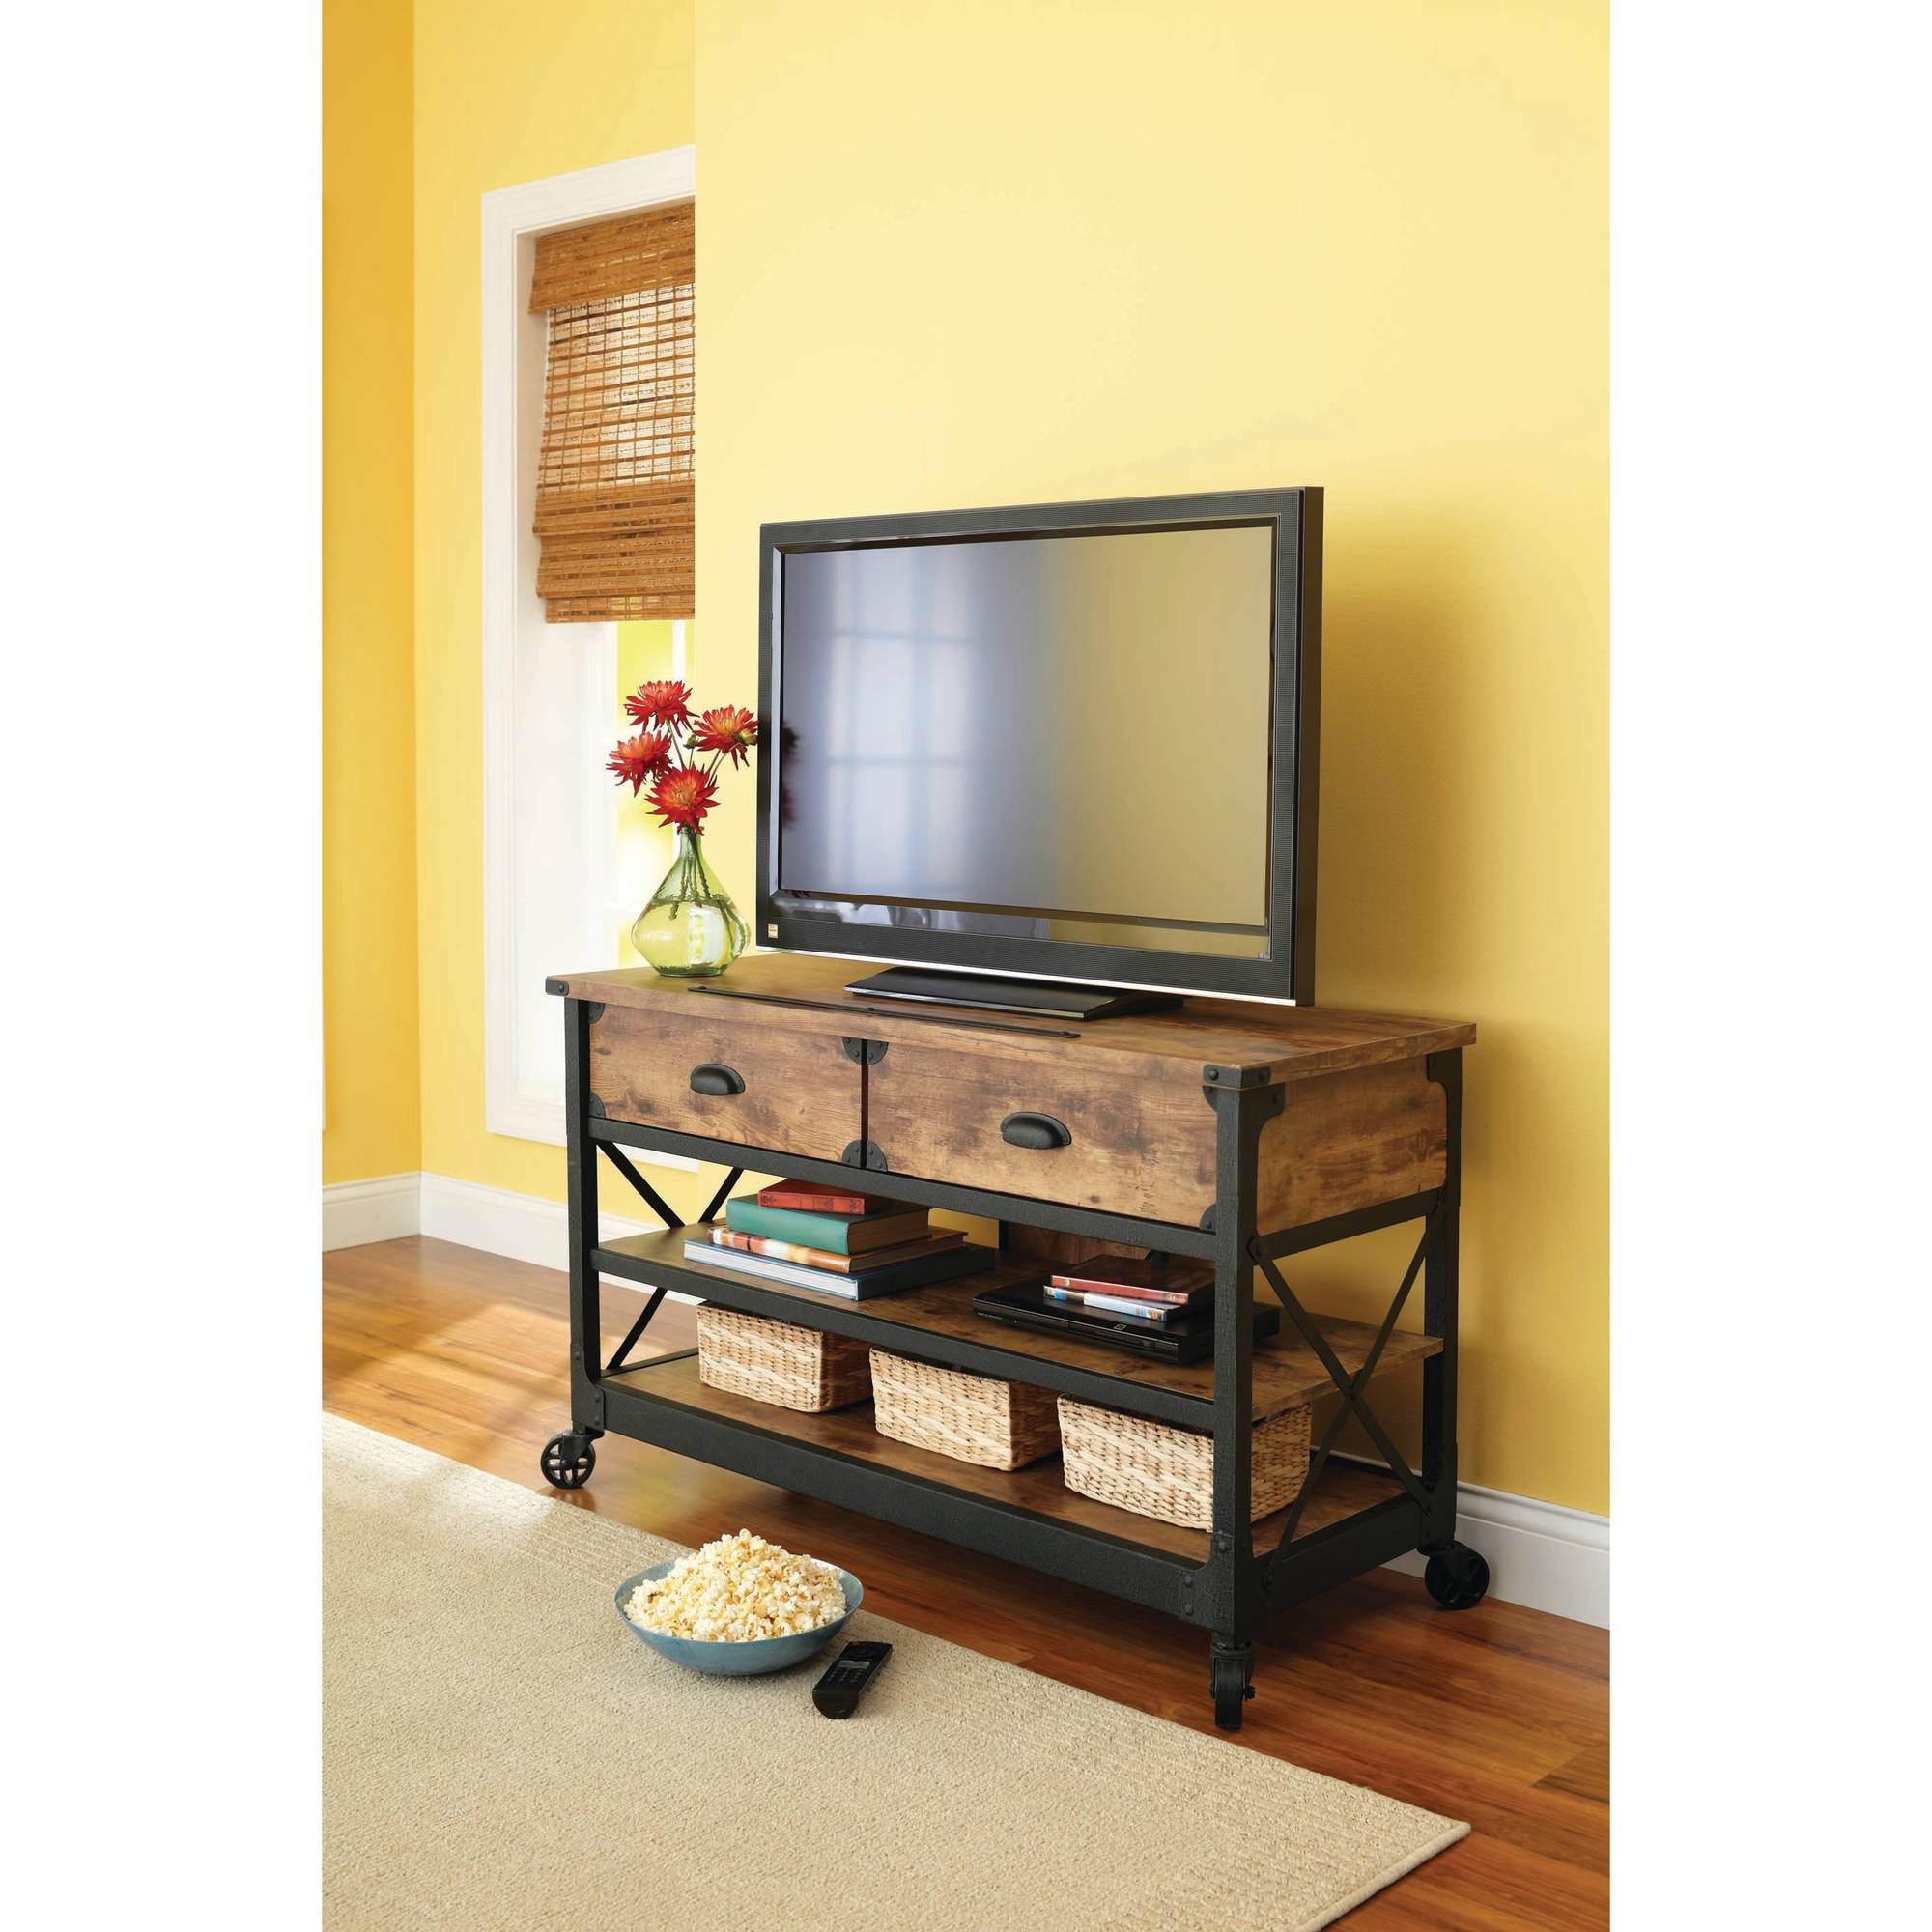 Better Homes & Gardens Rustic Country Tv Stand For Tvs Up To 52 Pertaining To Well Known Tv Stands With Drawers And Shelves (View 19 of 20)